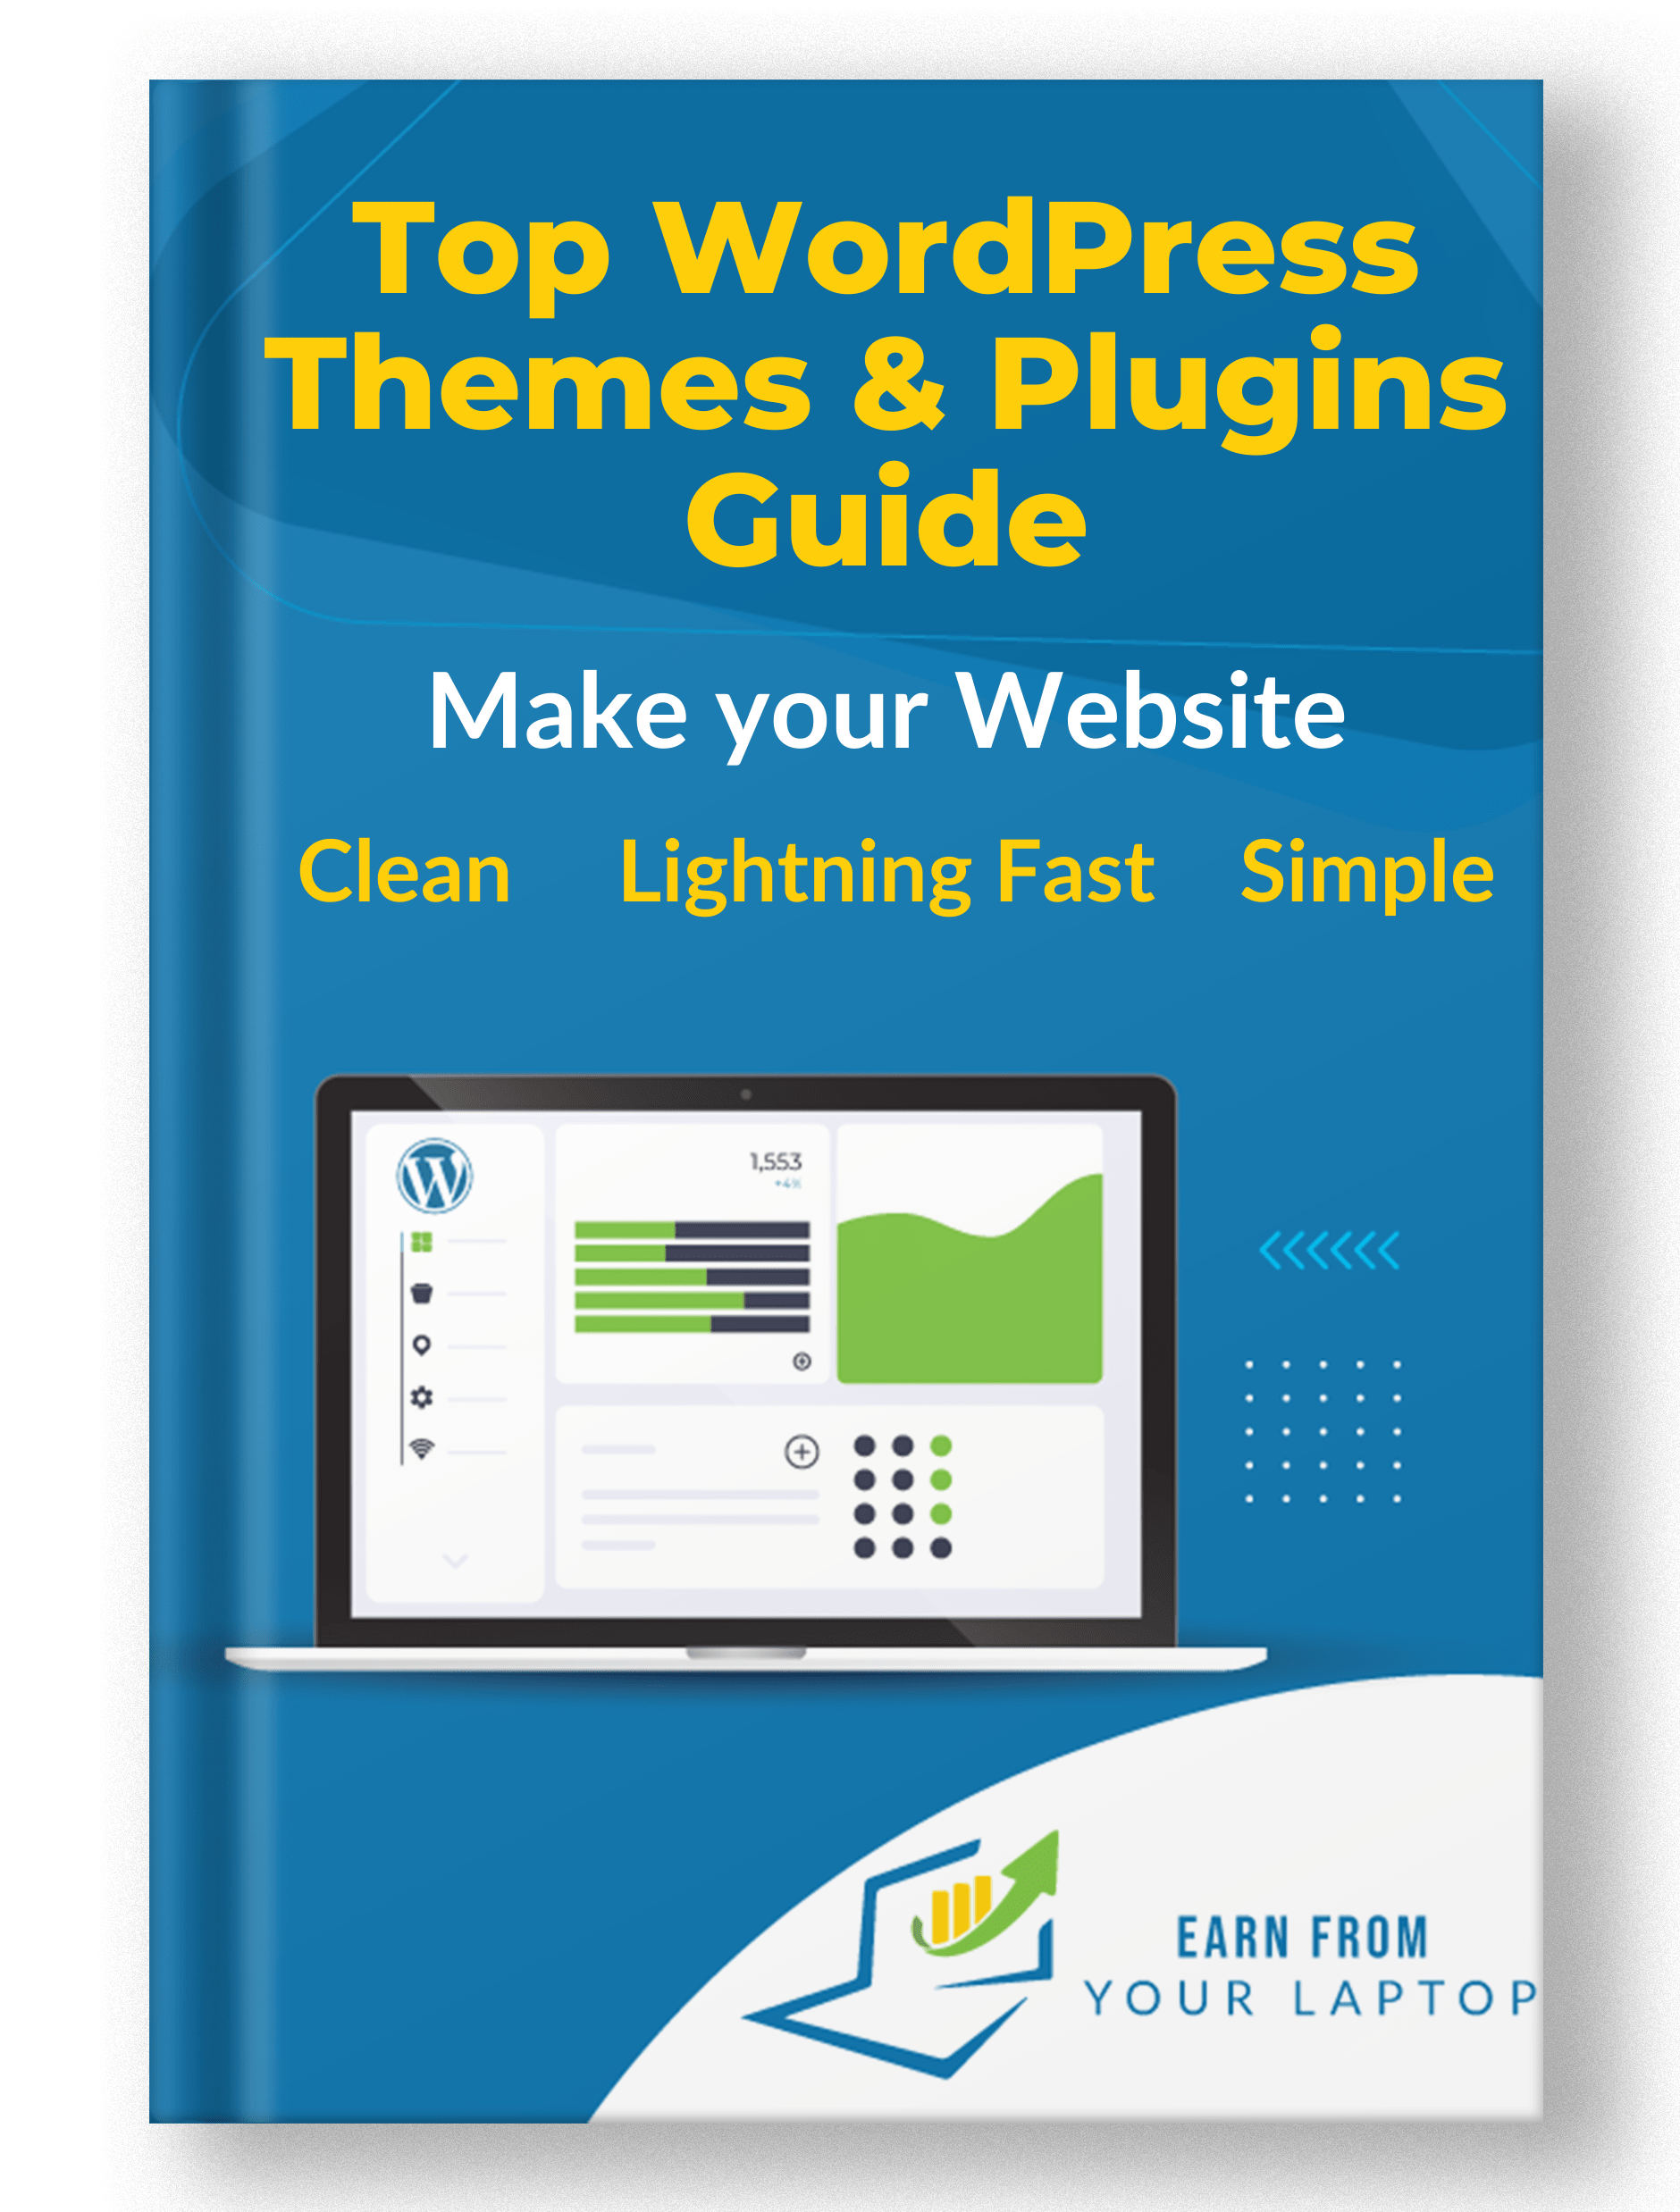 turn your passion into profit Top WordPress Themes Plugins Guide 1 min